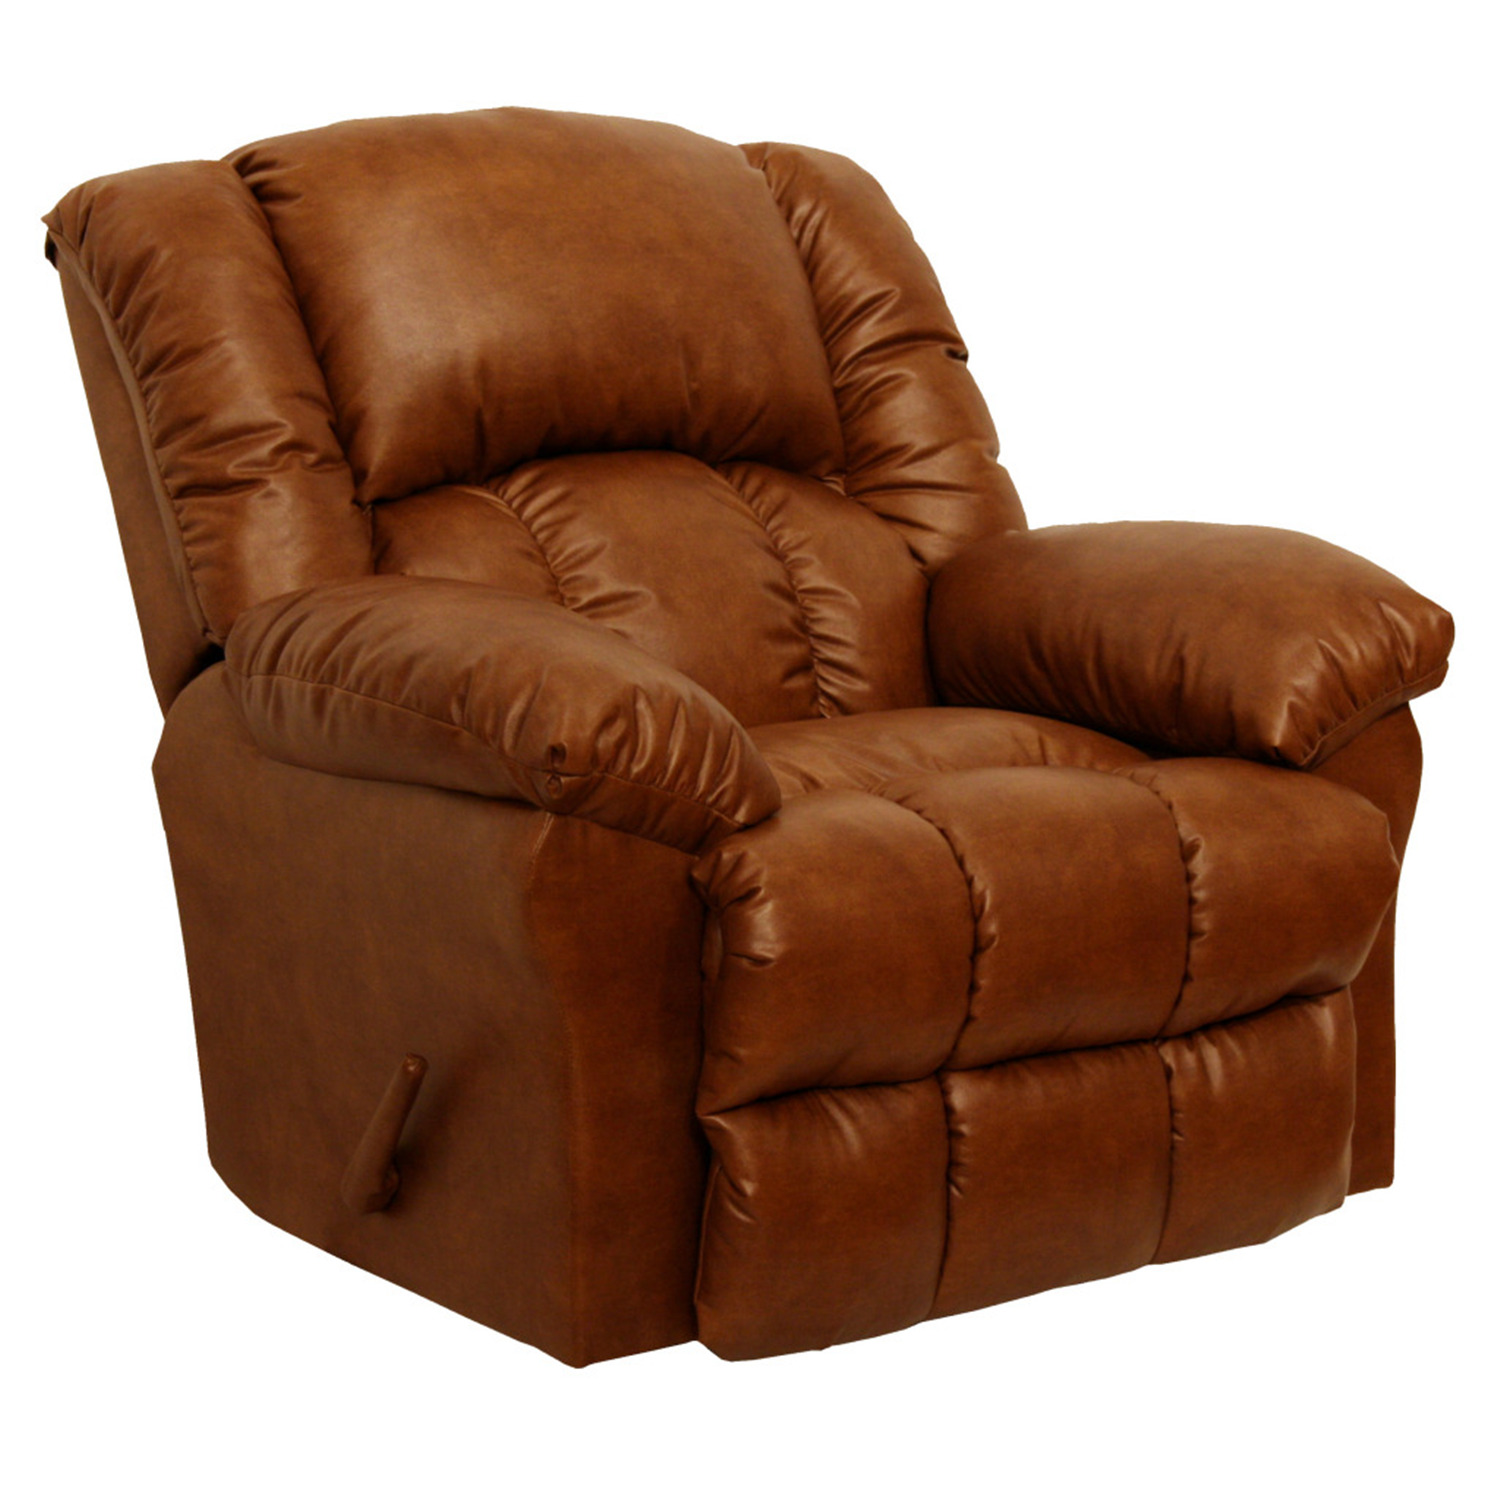 Catnapper winchester leather rocker recliner by oj for Catnapper cloud nine chaise recliner